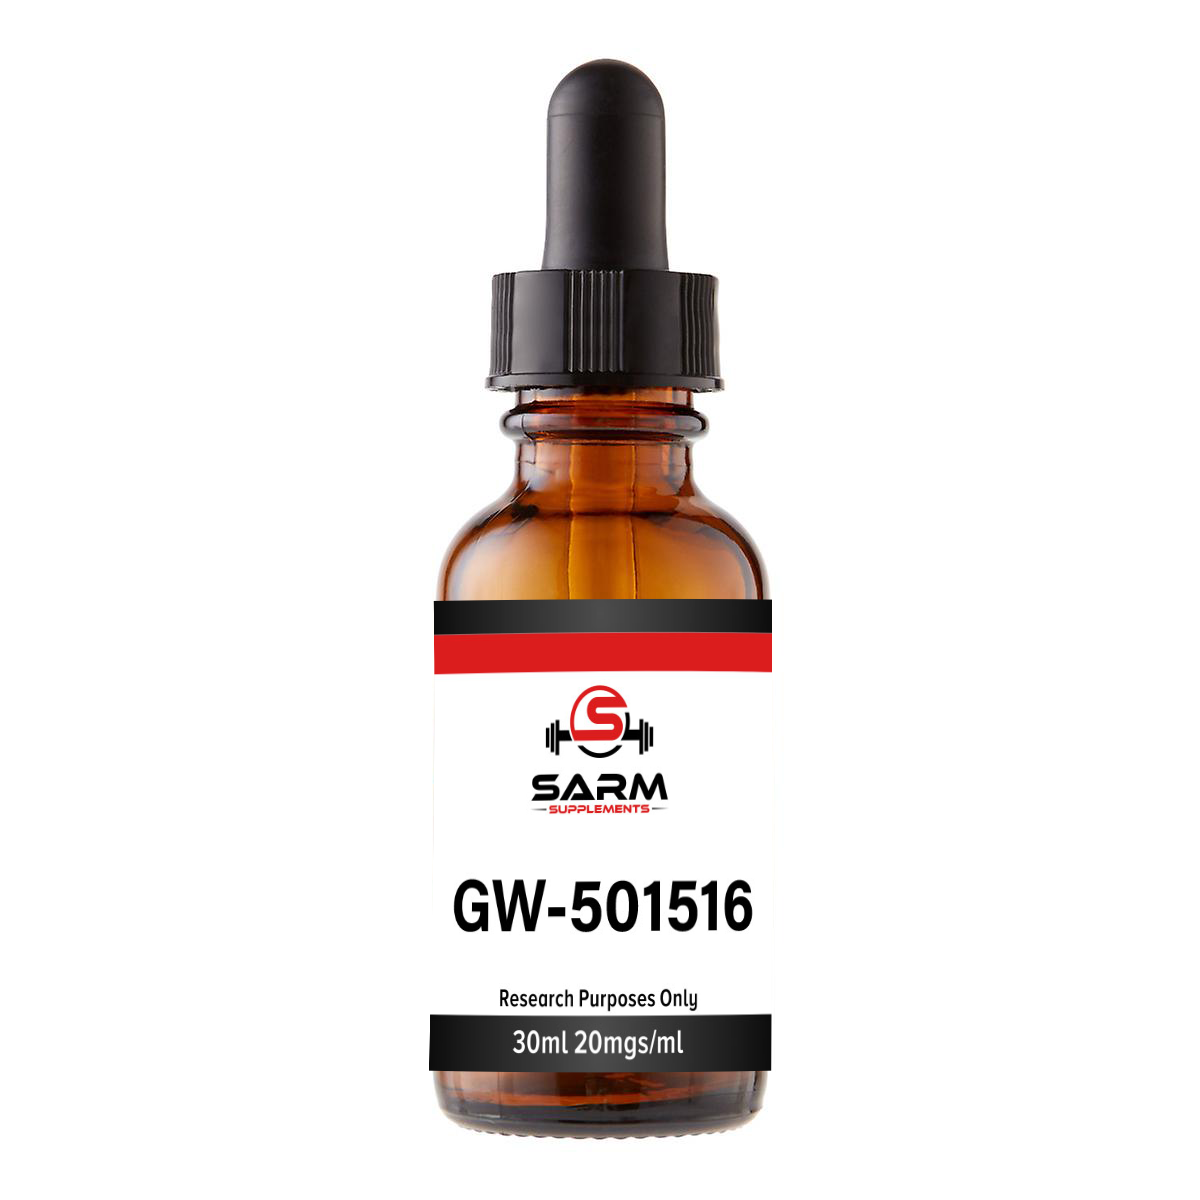 Sarm Supplements GW-501516